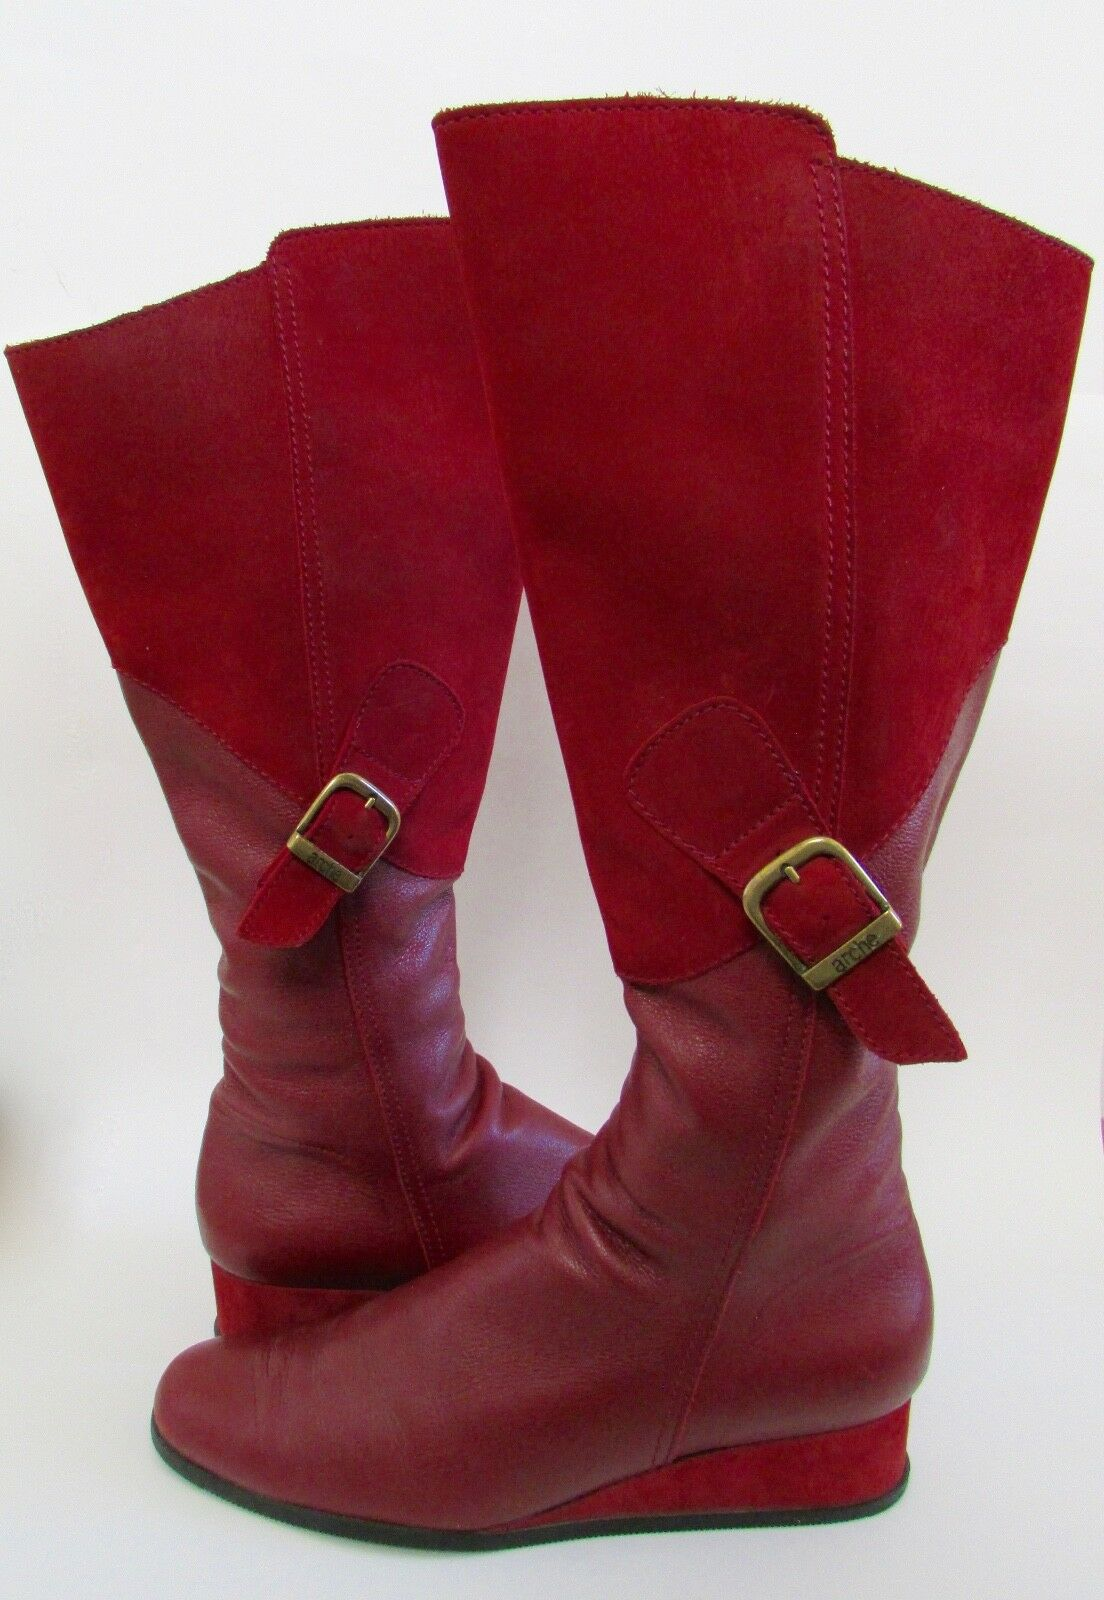 ARCHE France Red Suede Leather Knee High Wedge Boots Sz 40.5   9.5